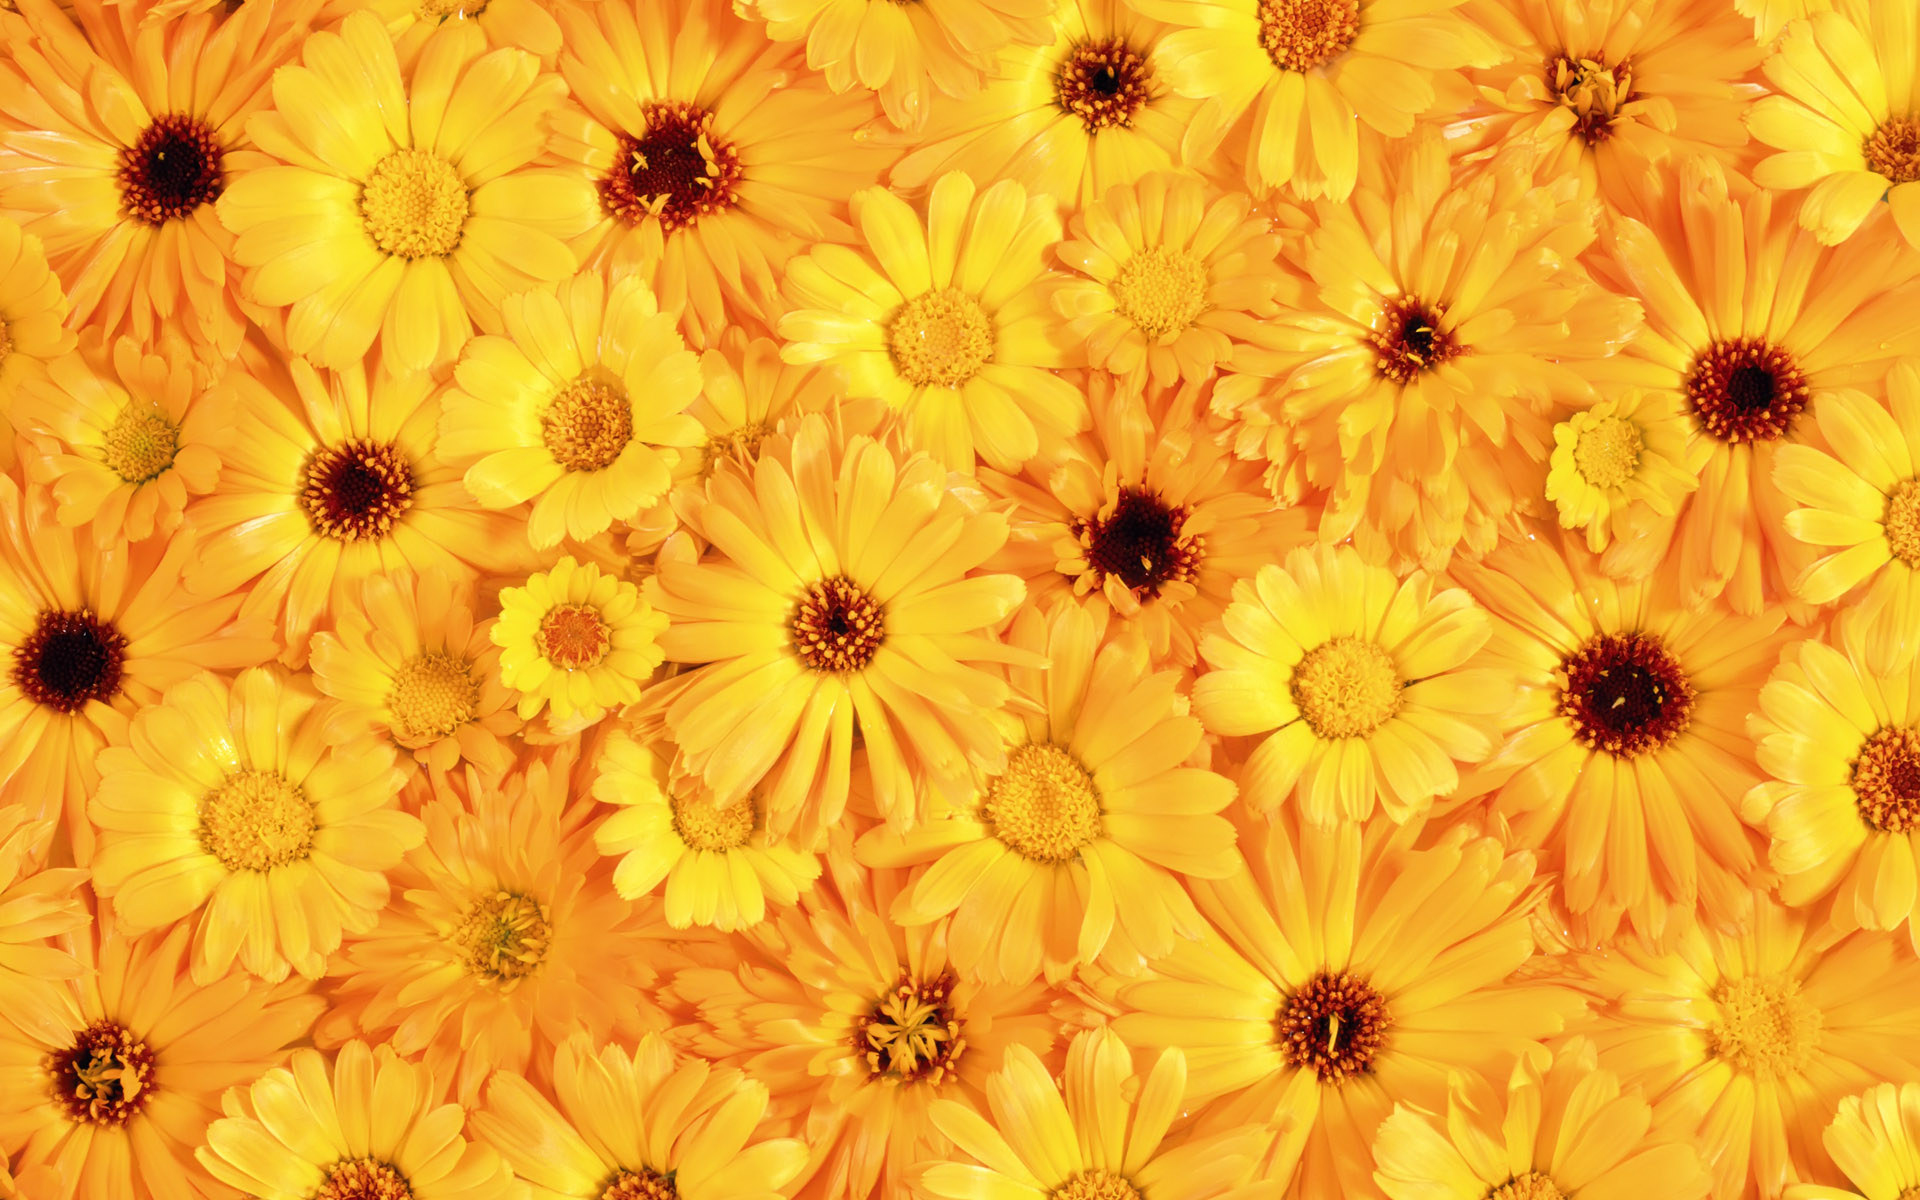 Yellow Color Wallpaper - Wallpaper, High Definition, High Quality ...